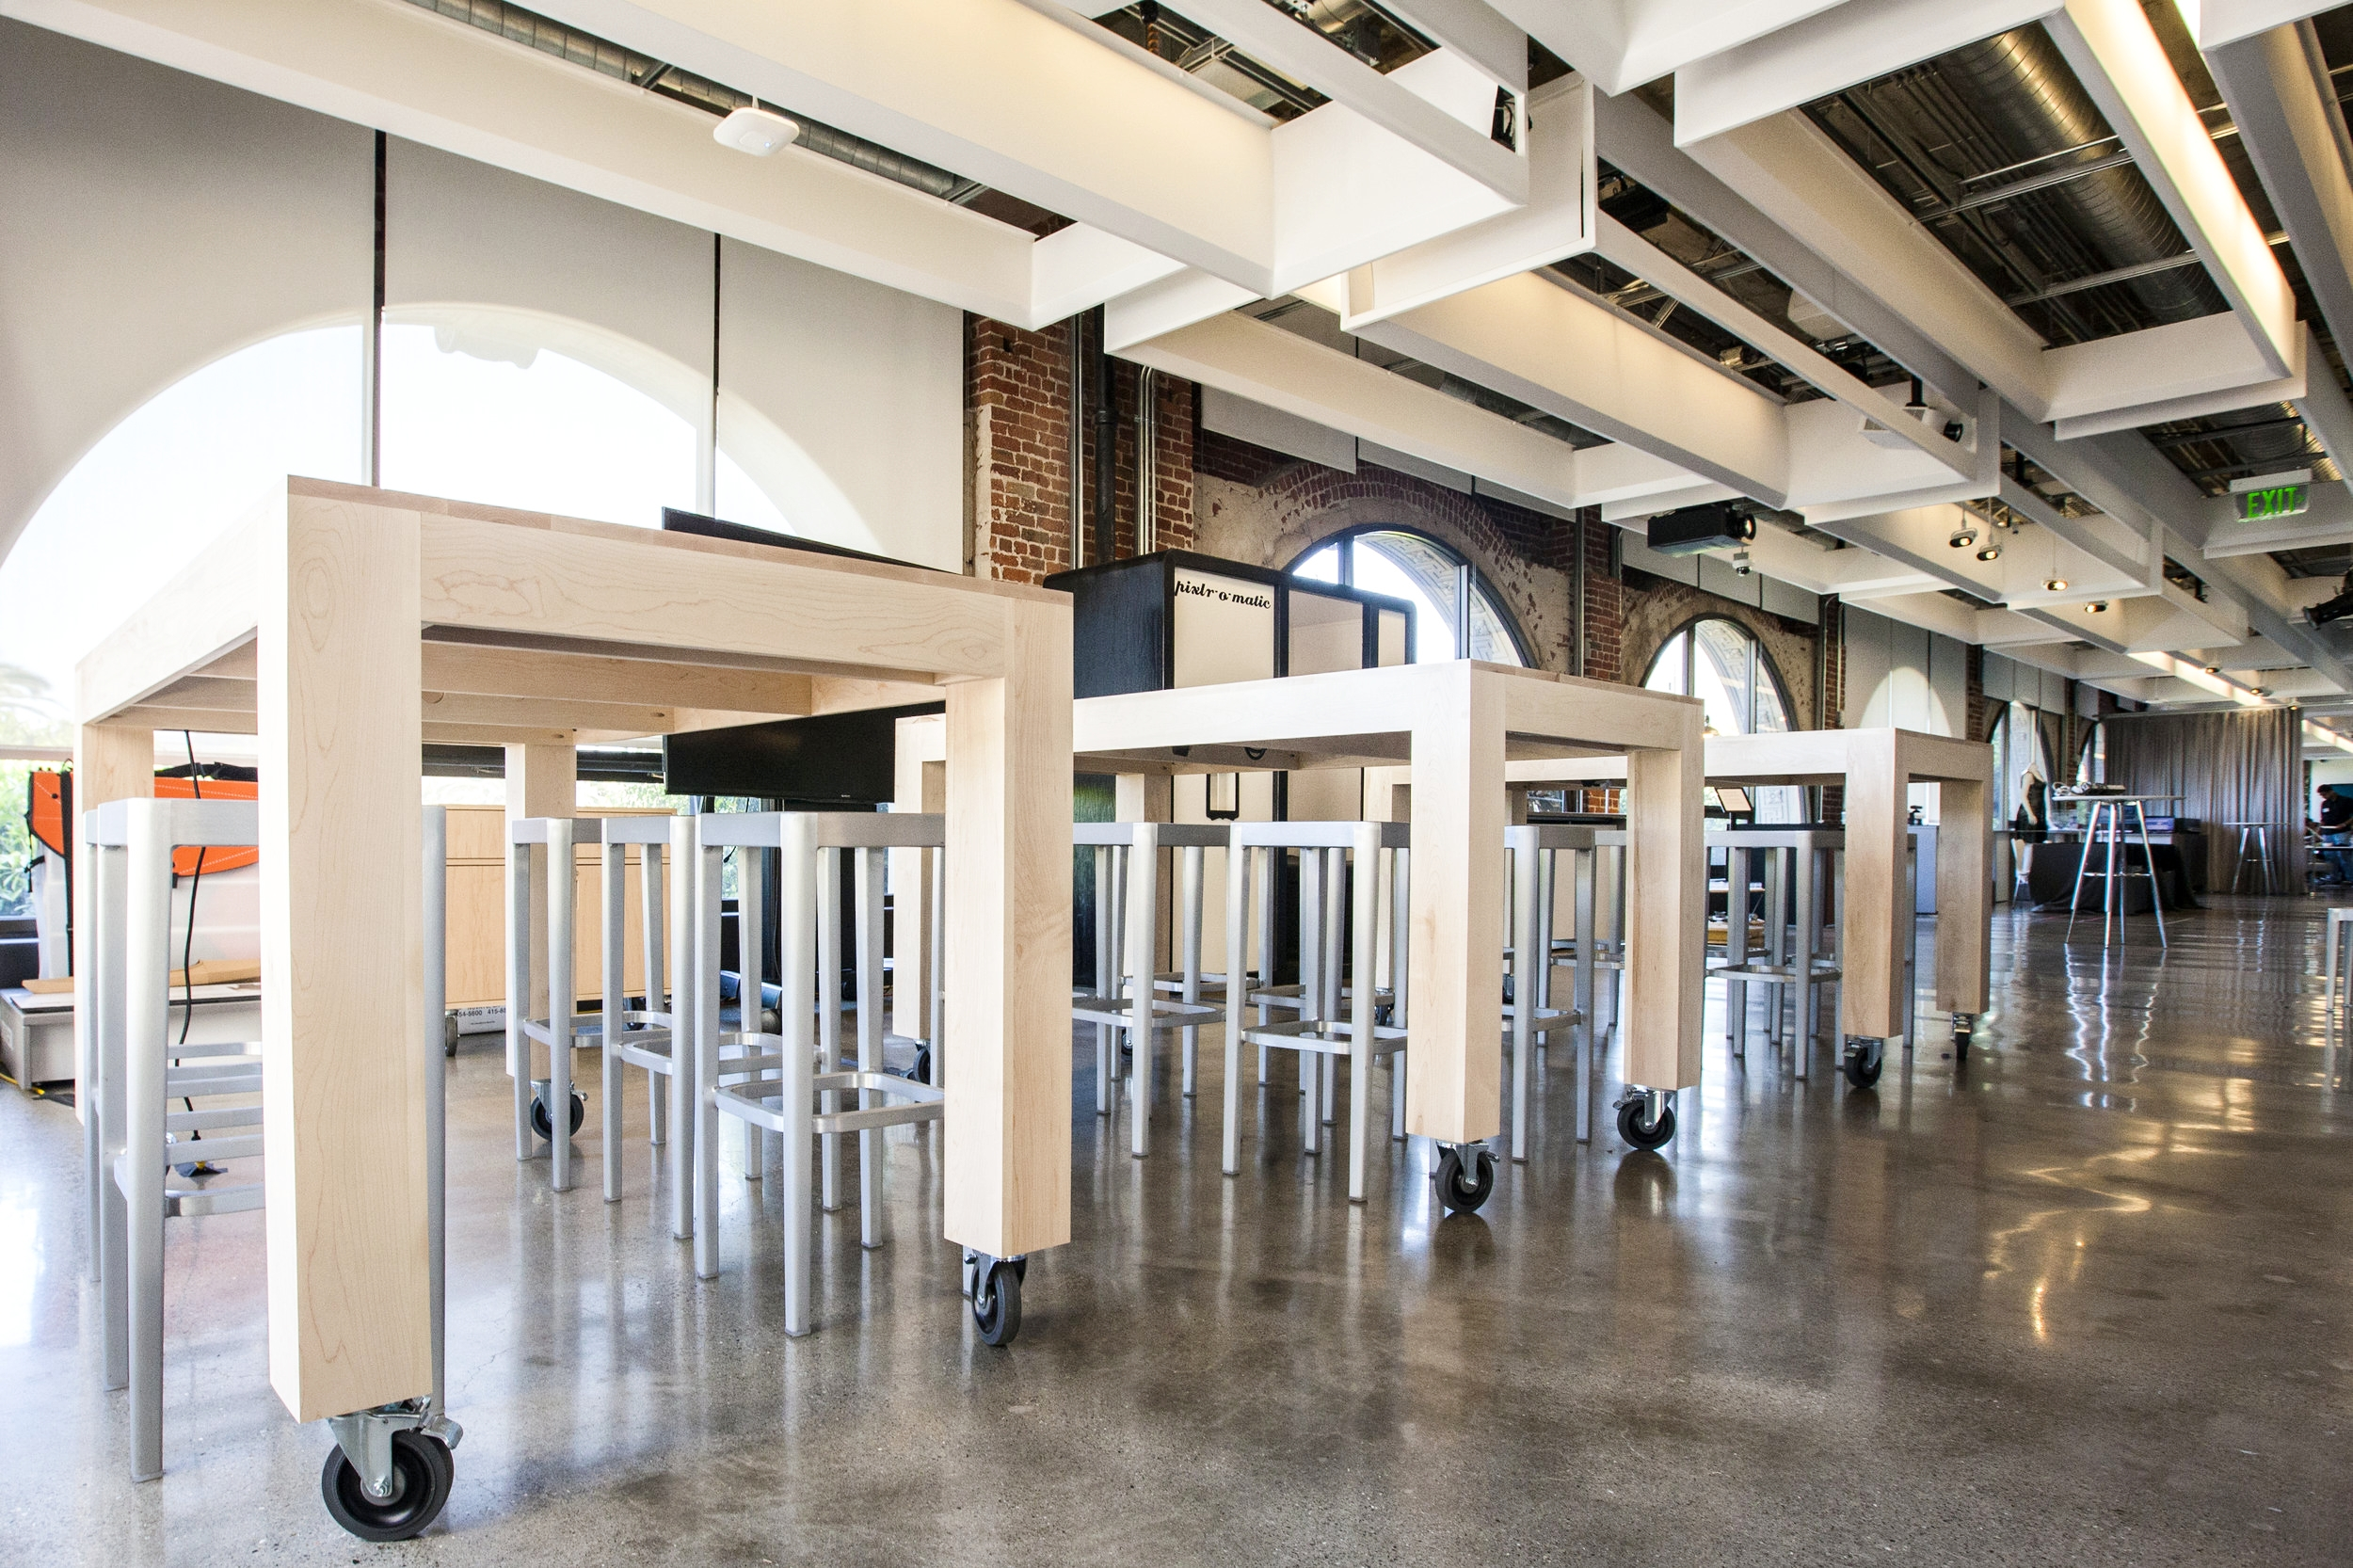 In the SF gallery space, the modern square design of these tables goes well with the interior of the space.